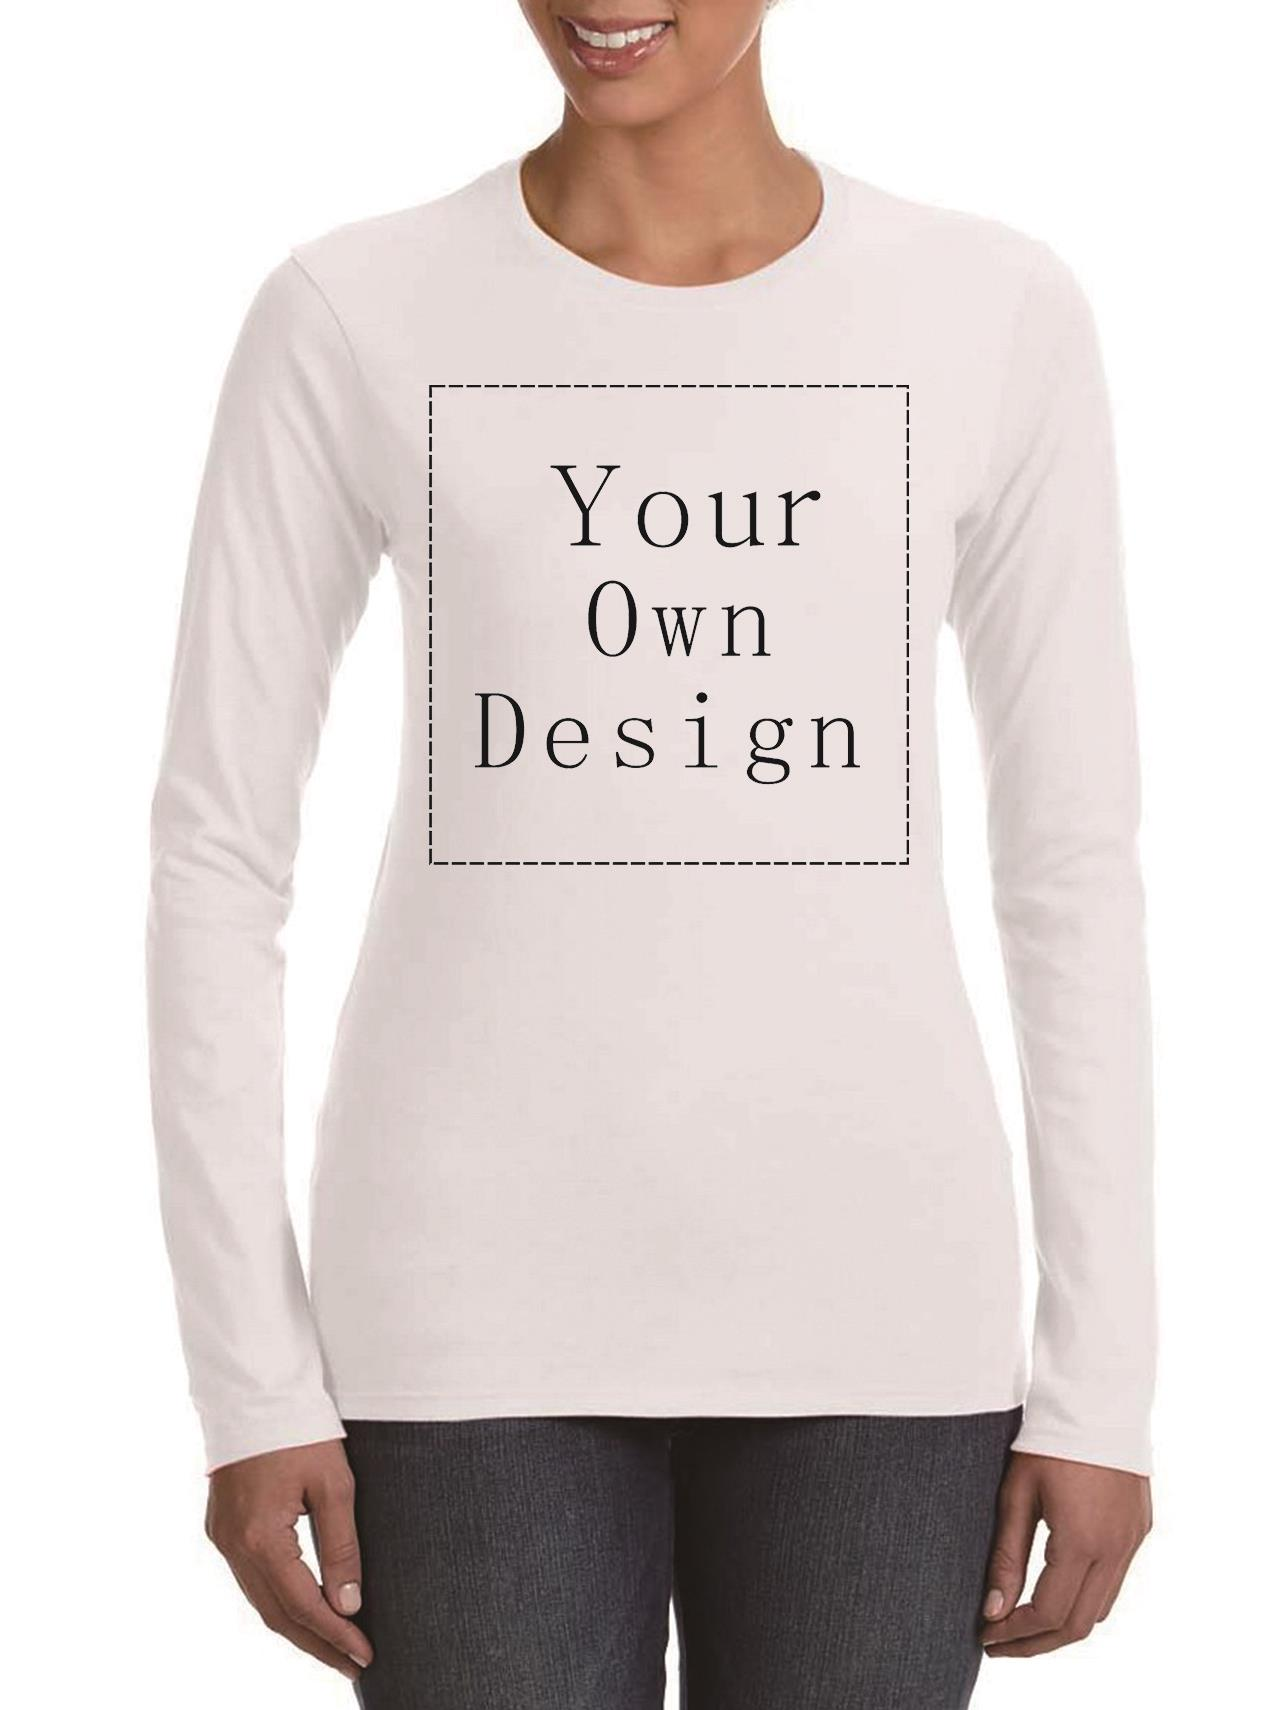 Design your t shirt for free - 2016 Women Your Own Design T Shirt Novelty Tops Lady Custom Printed Long Sleeve Tees